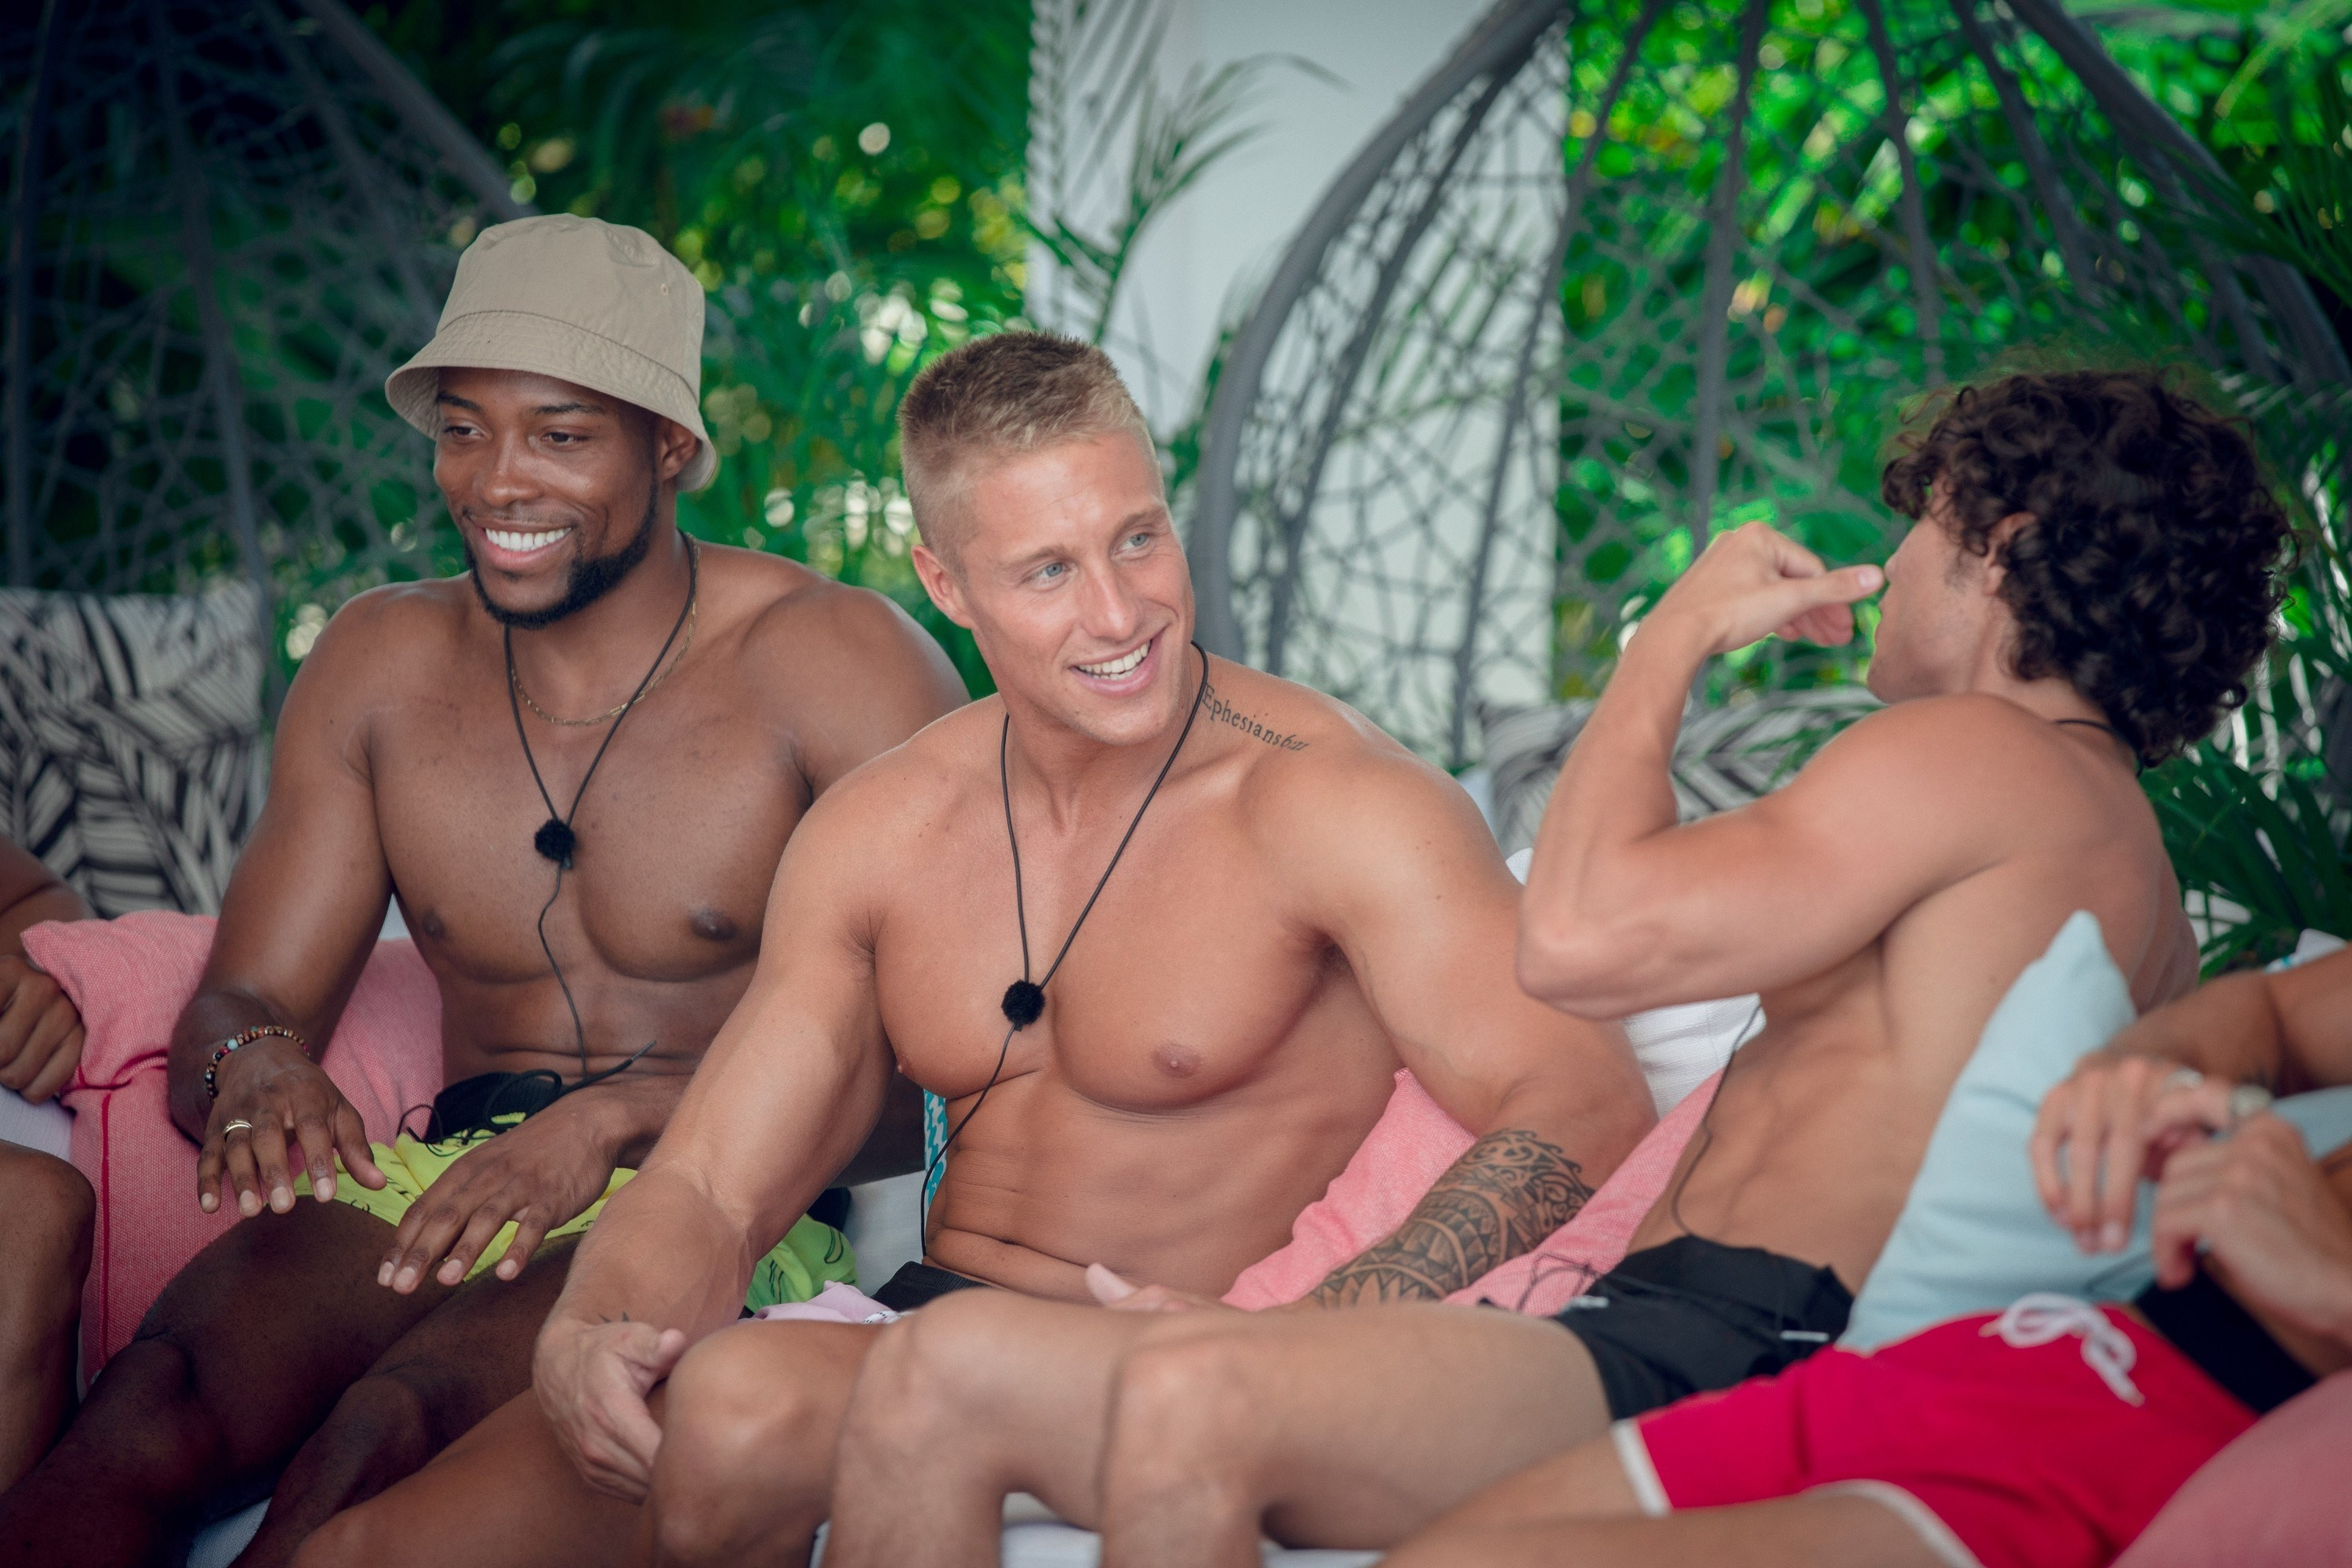 Men from the Too Hot to Handle cast hanging around shirtless